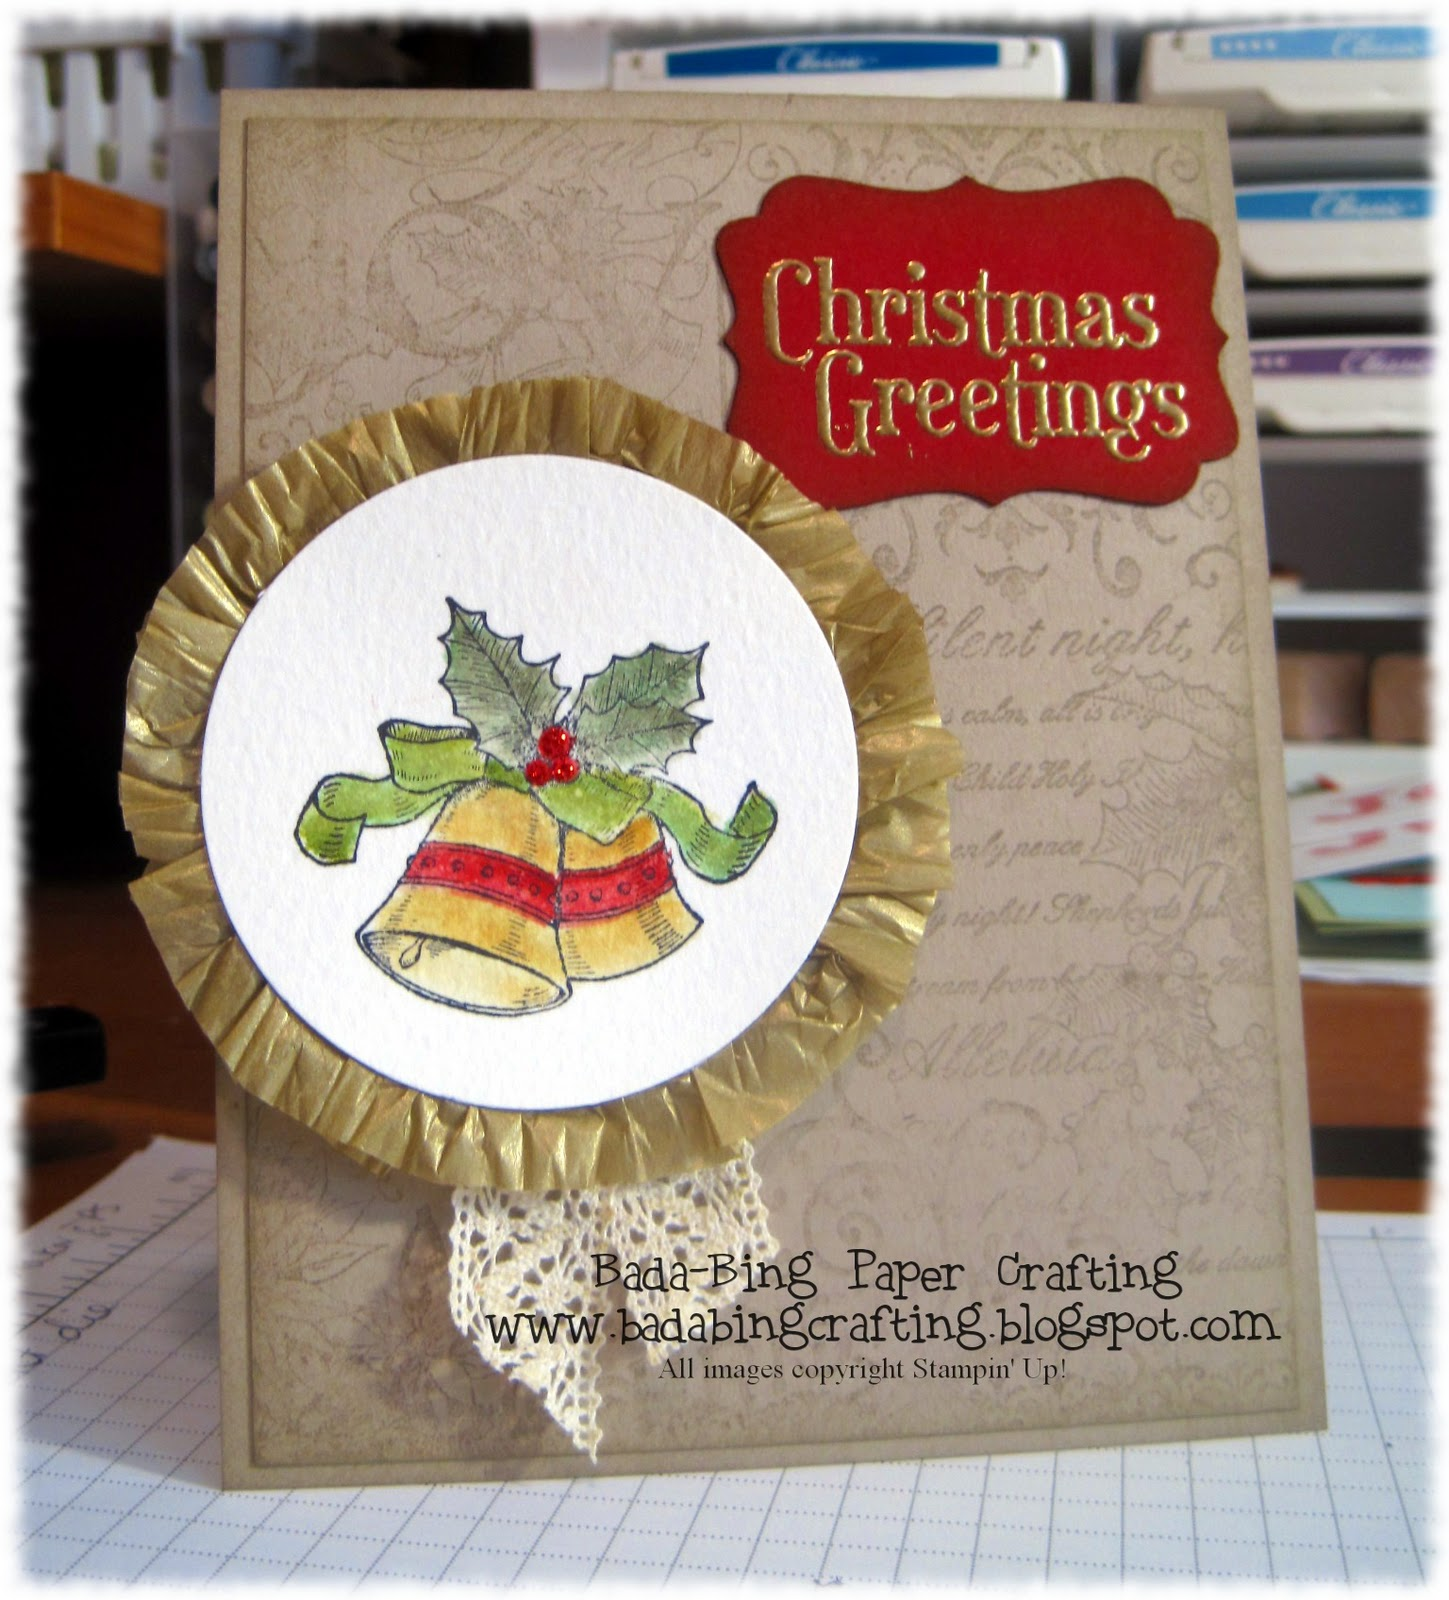 Bada Bing Paper Crafting An Old Fashioned Christmas